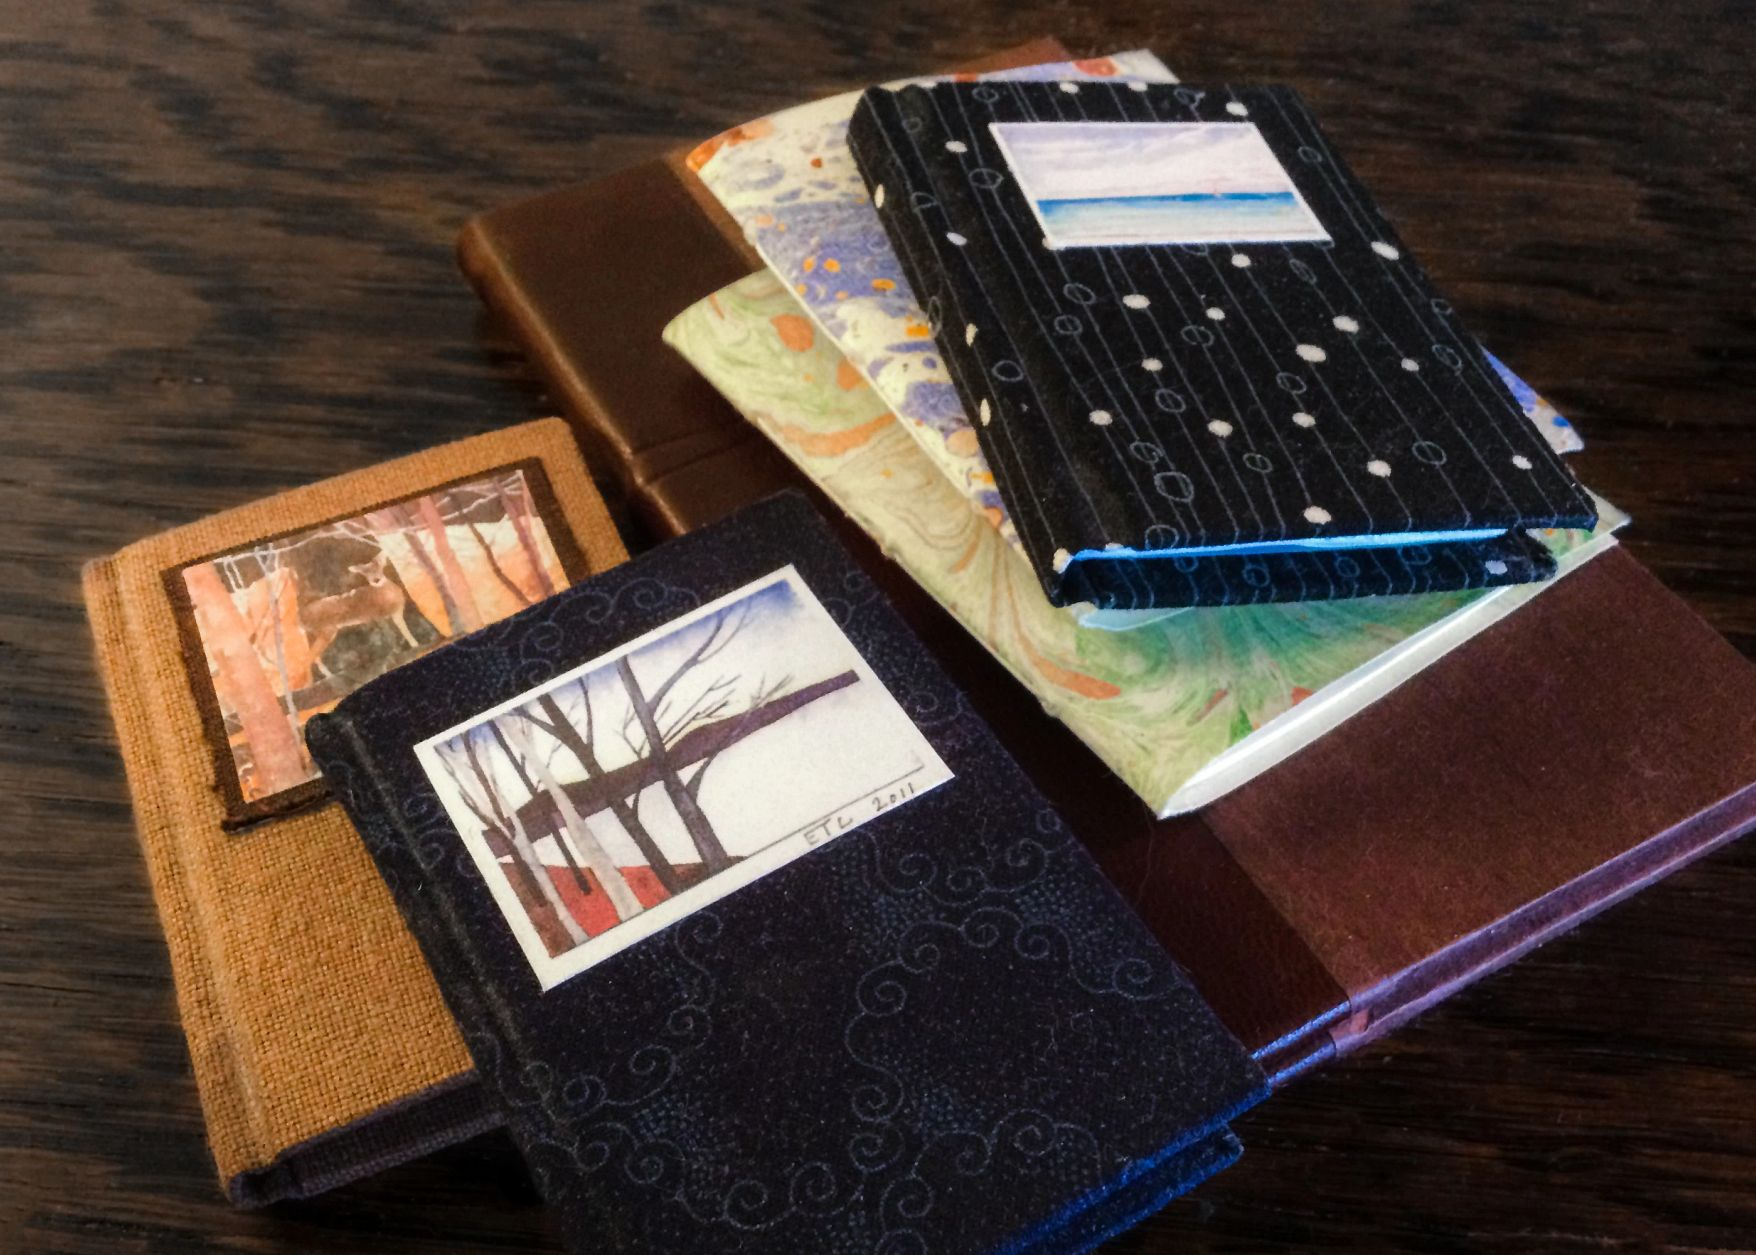 Handmade journals are pictured on a table